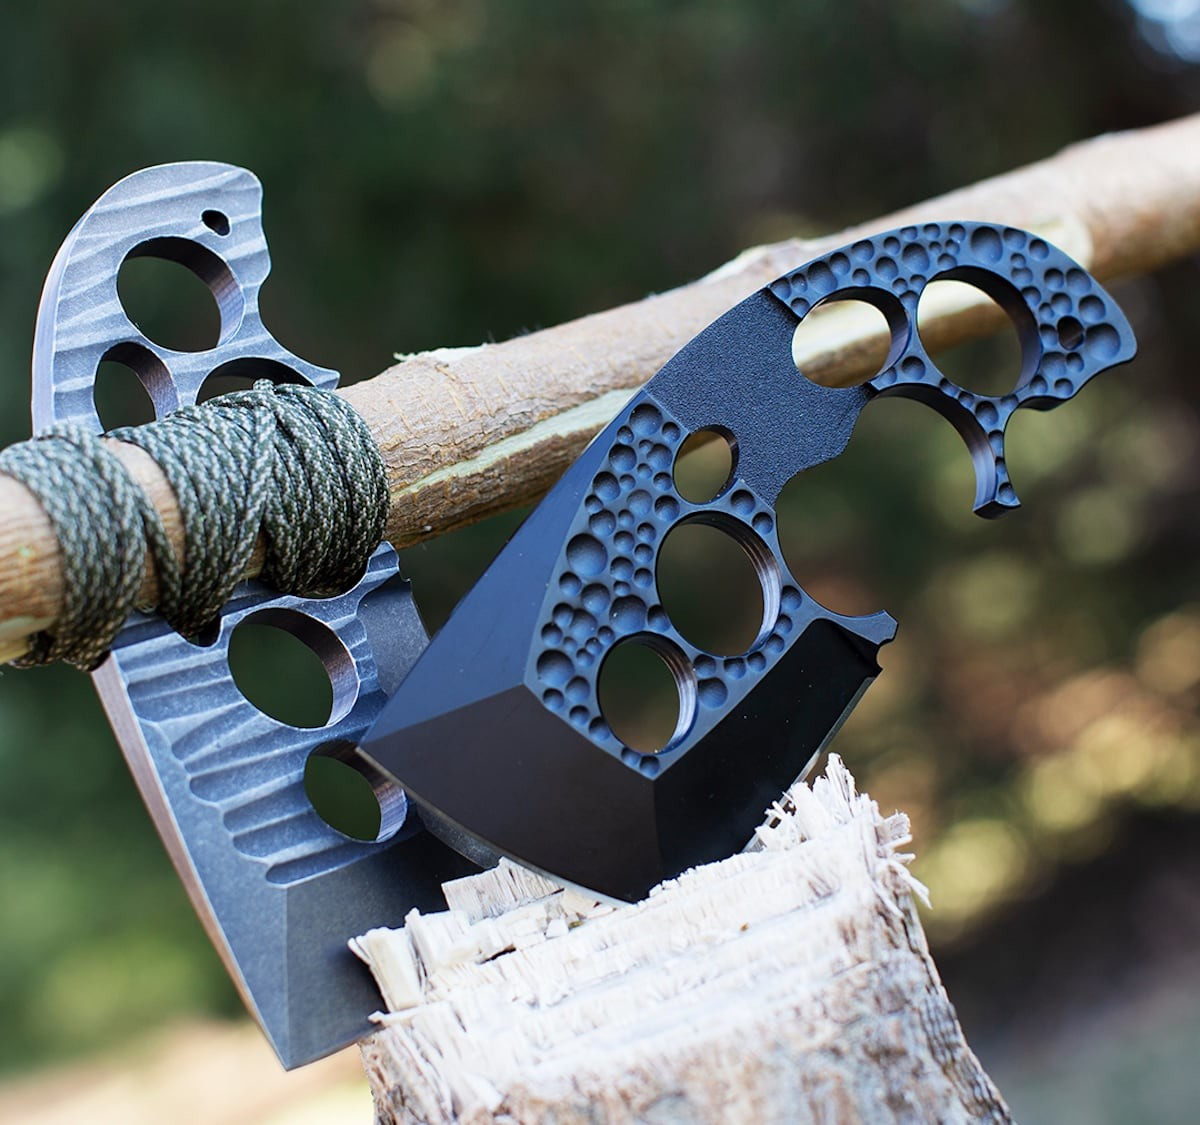 Bone Daddy Axxis Pocket Hand Axe tackles all your chopping and slicing needs